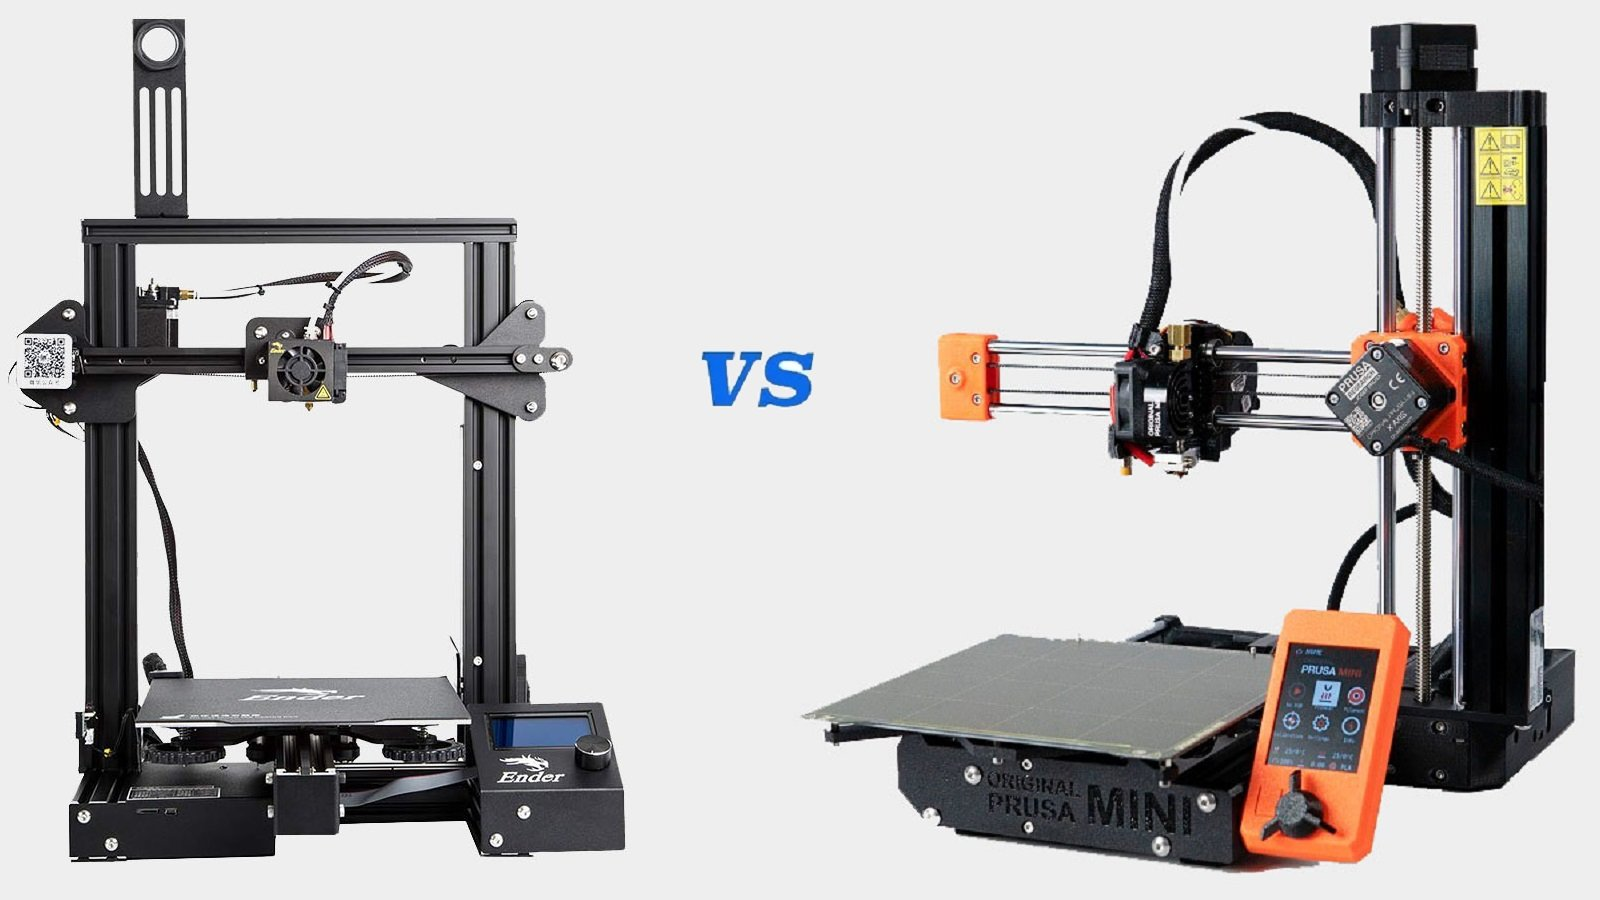 Original Prusa Mini vs Ender 3 (Pro/V2): The Differences | All3DP